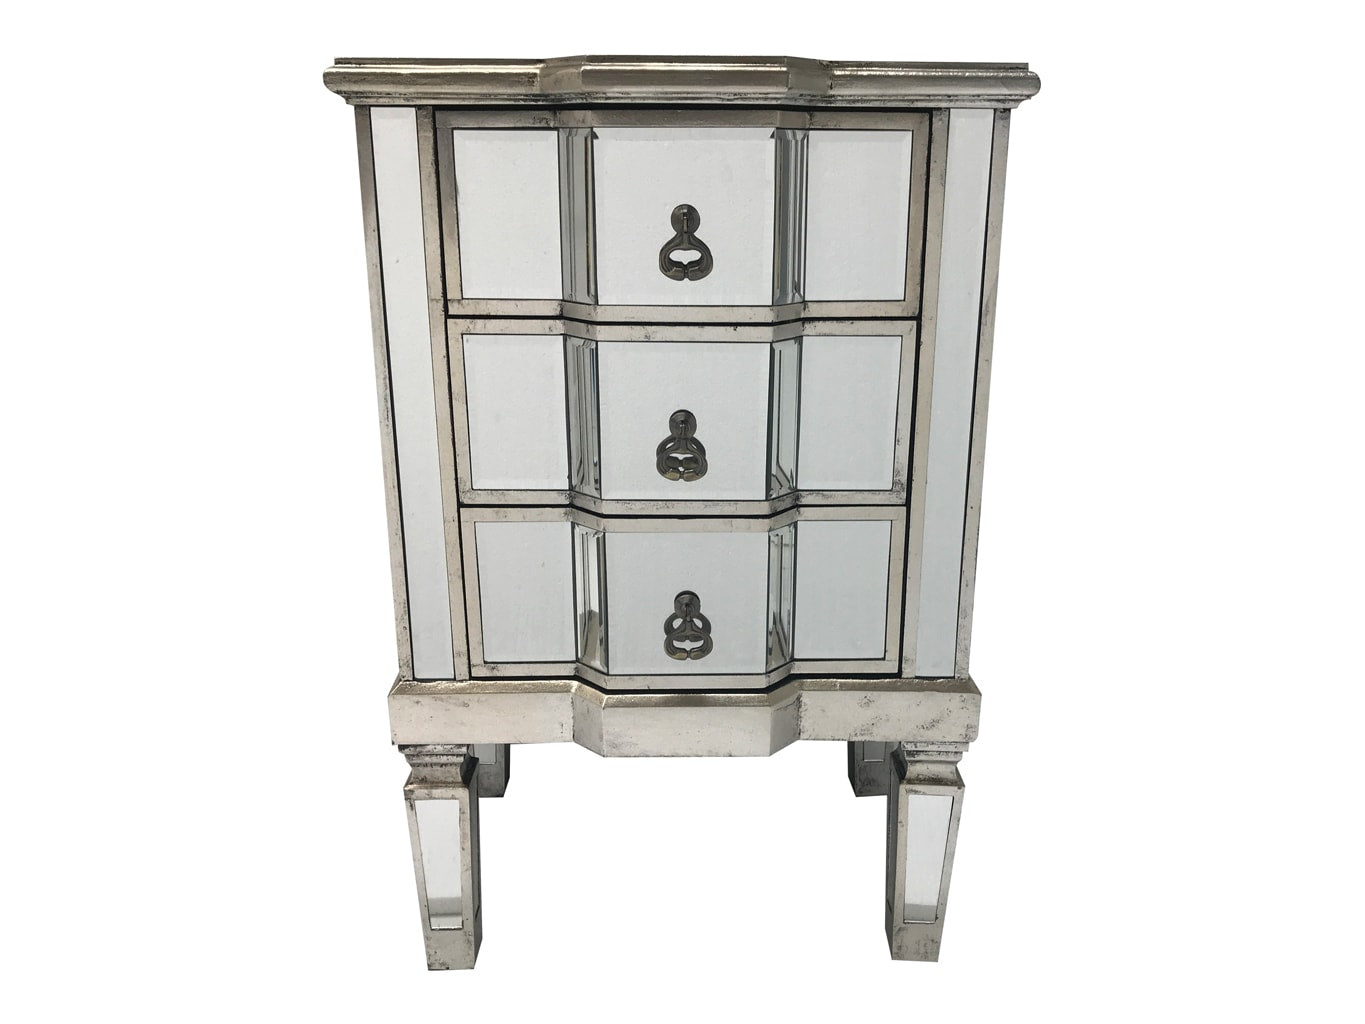 Charleston mirrored bedside with 3 drawers, wood and glass, champagne silver